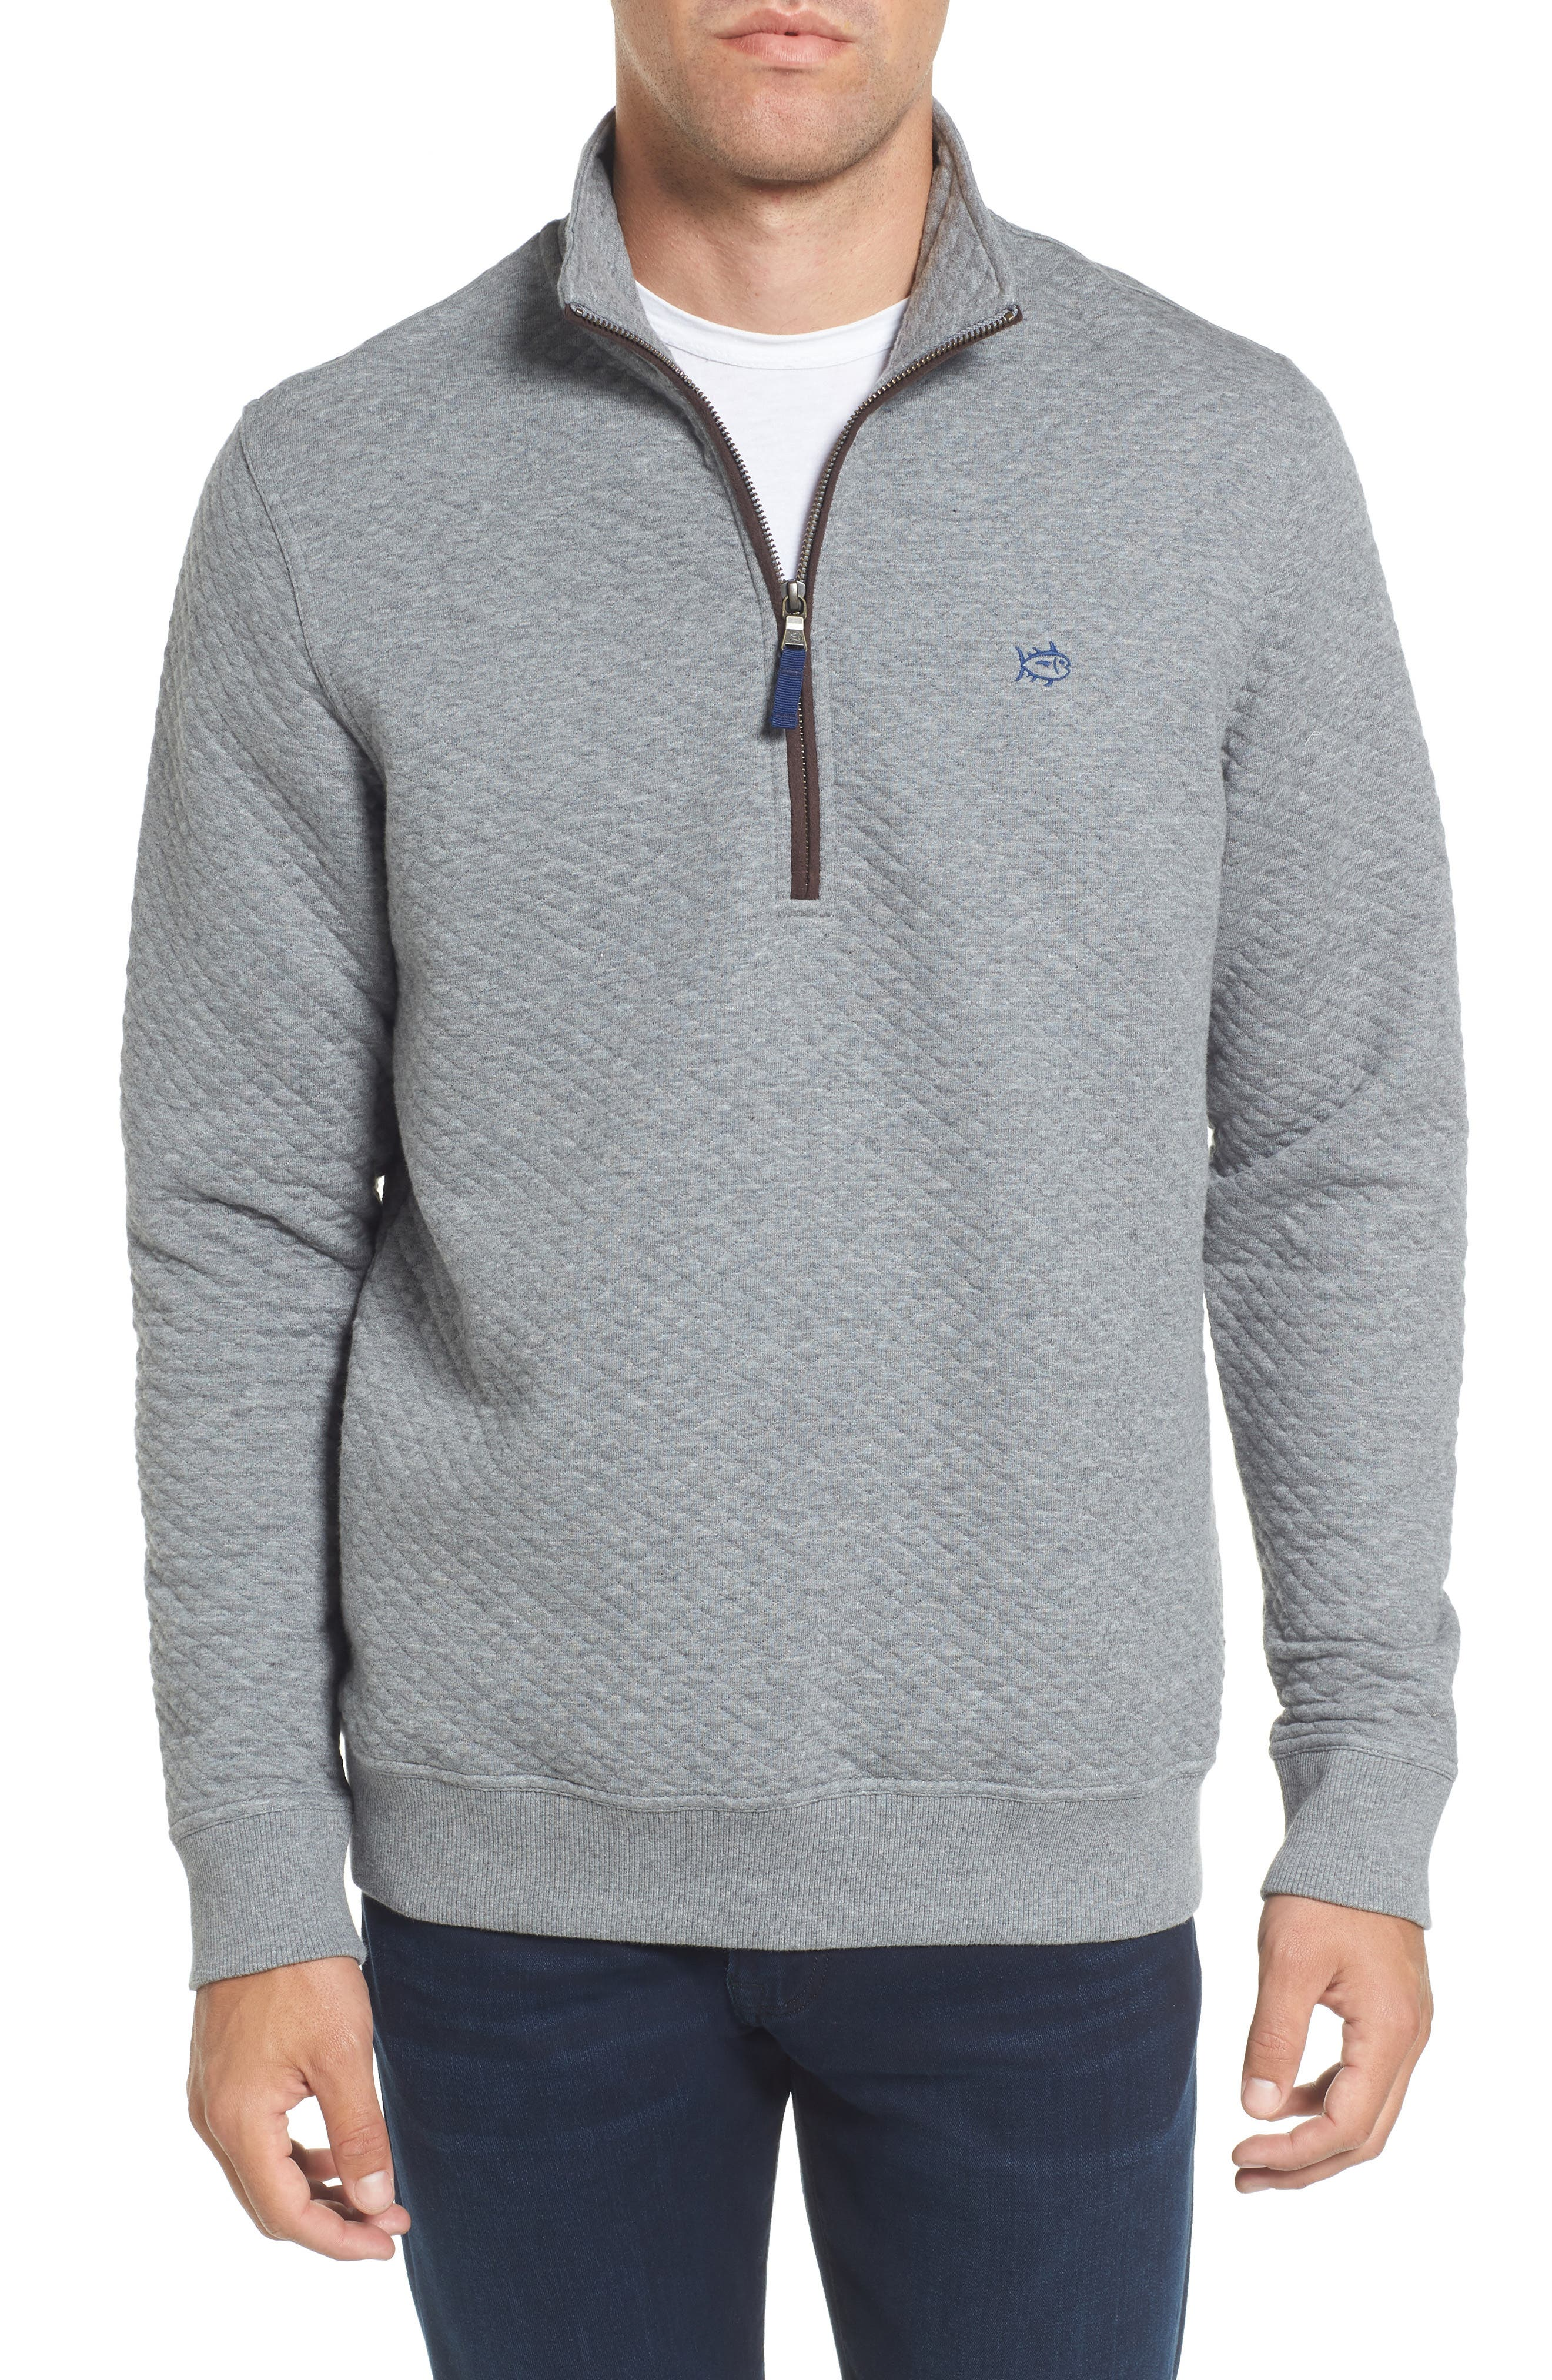 Southern Tide Sundown Quilted Quarter Zip Pullover